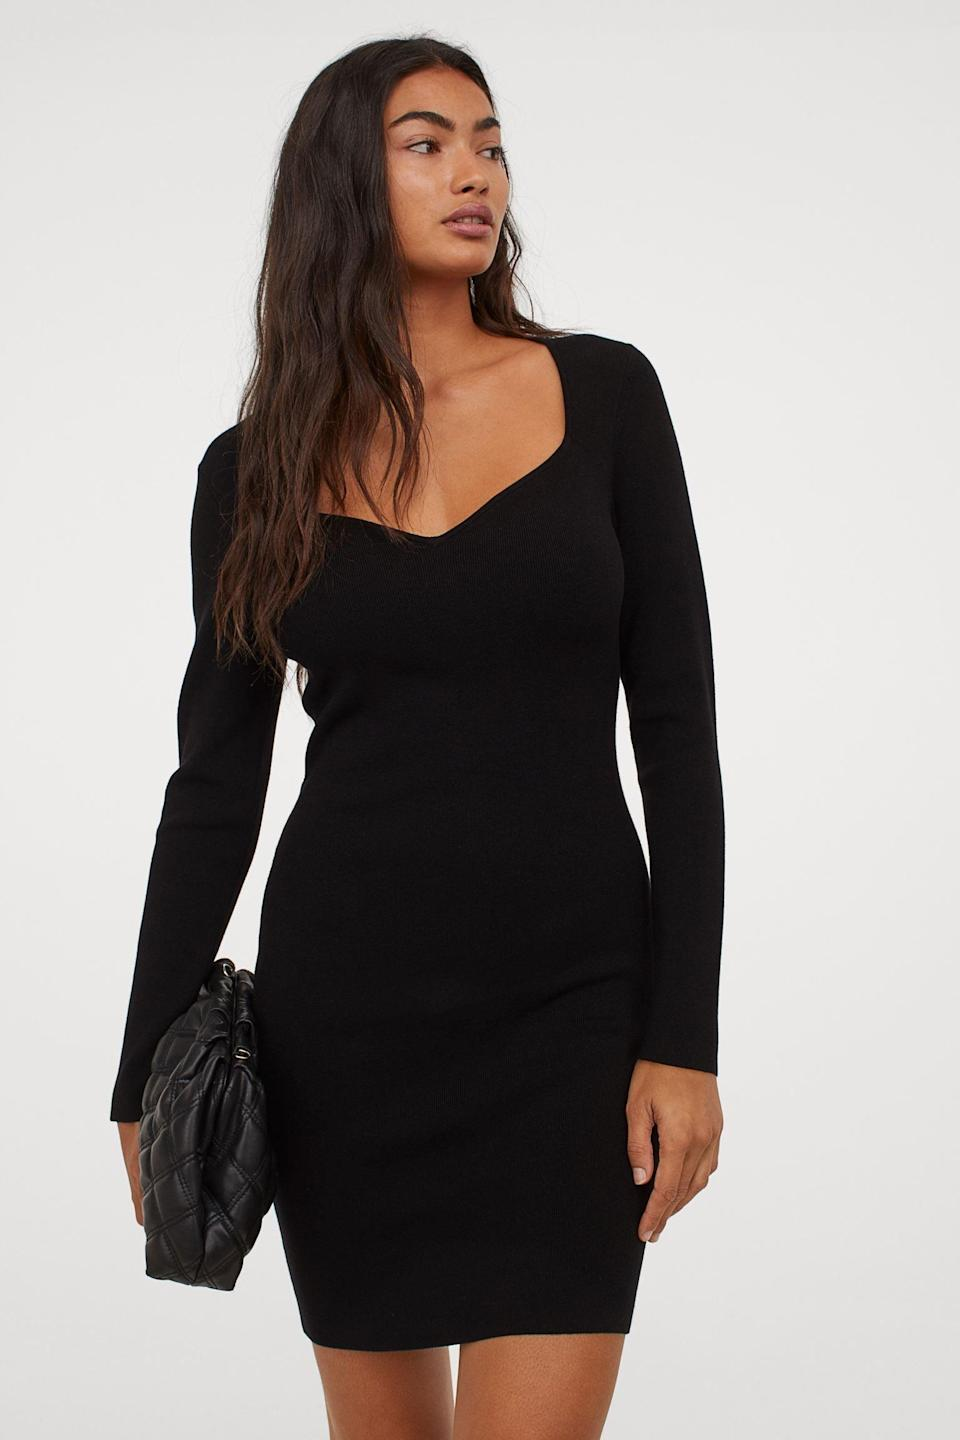 <p>This <span>Sweetheart-neckline Dress</span> ($40) is a reason to get dressed up. It will fit comfortably under a blazer or shirt jacket, so you can throw on an extra layer if you're cold and still look stylish.</p>